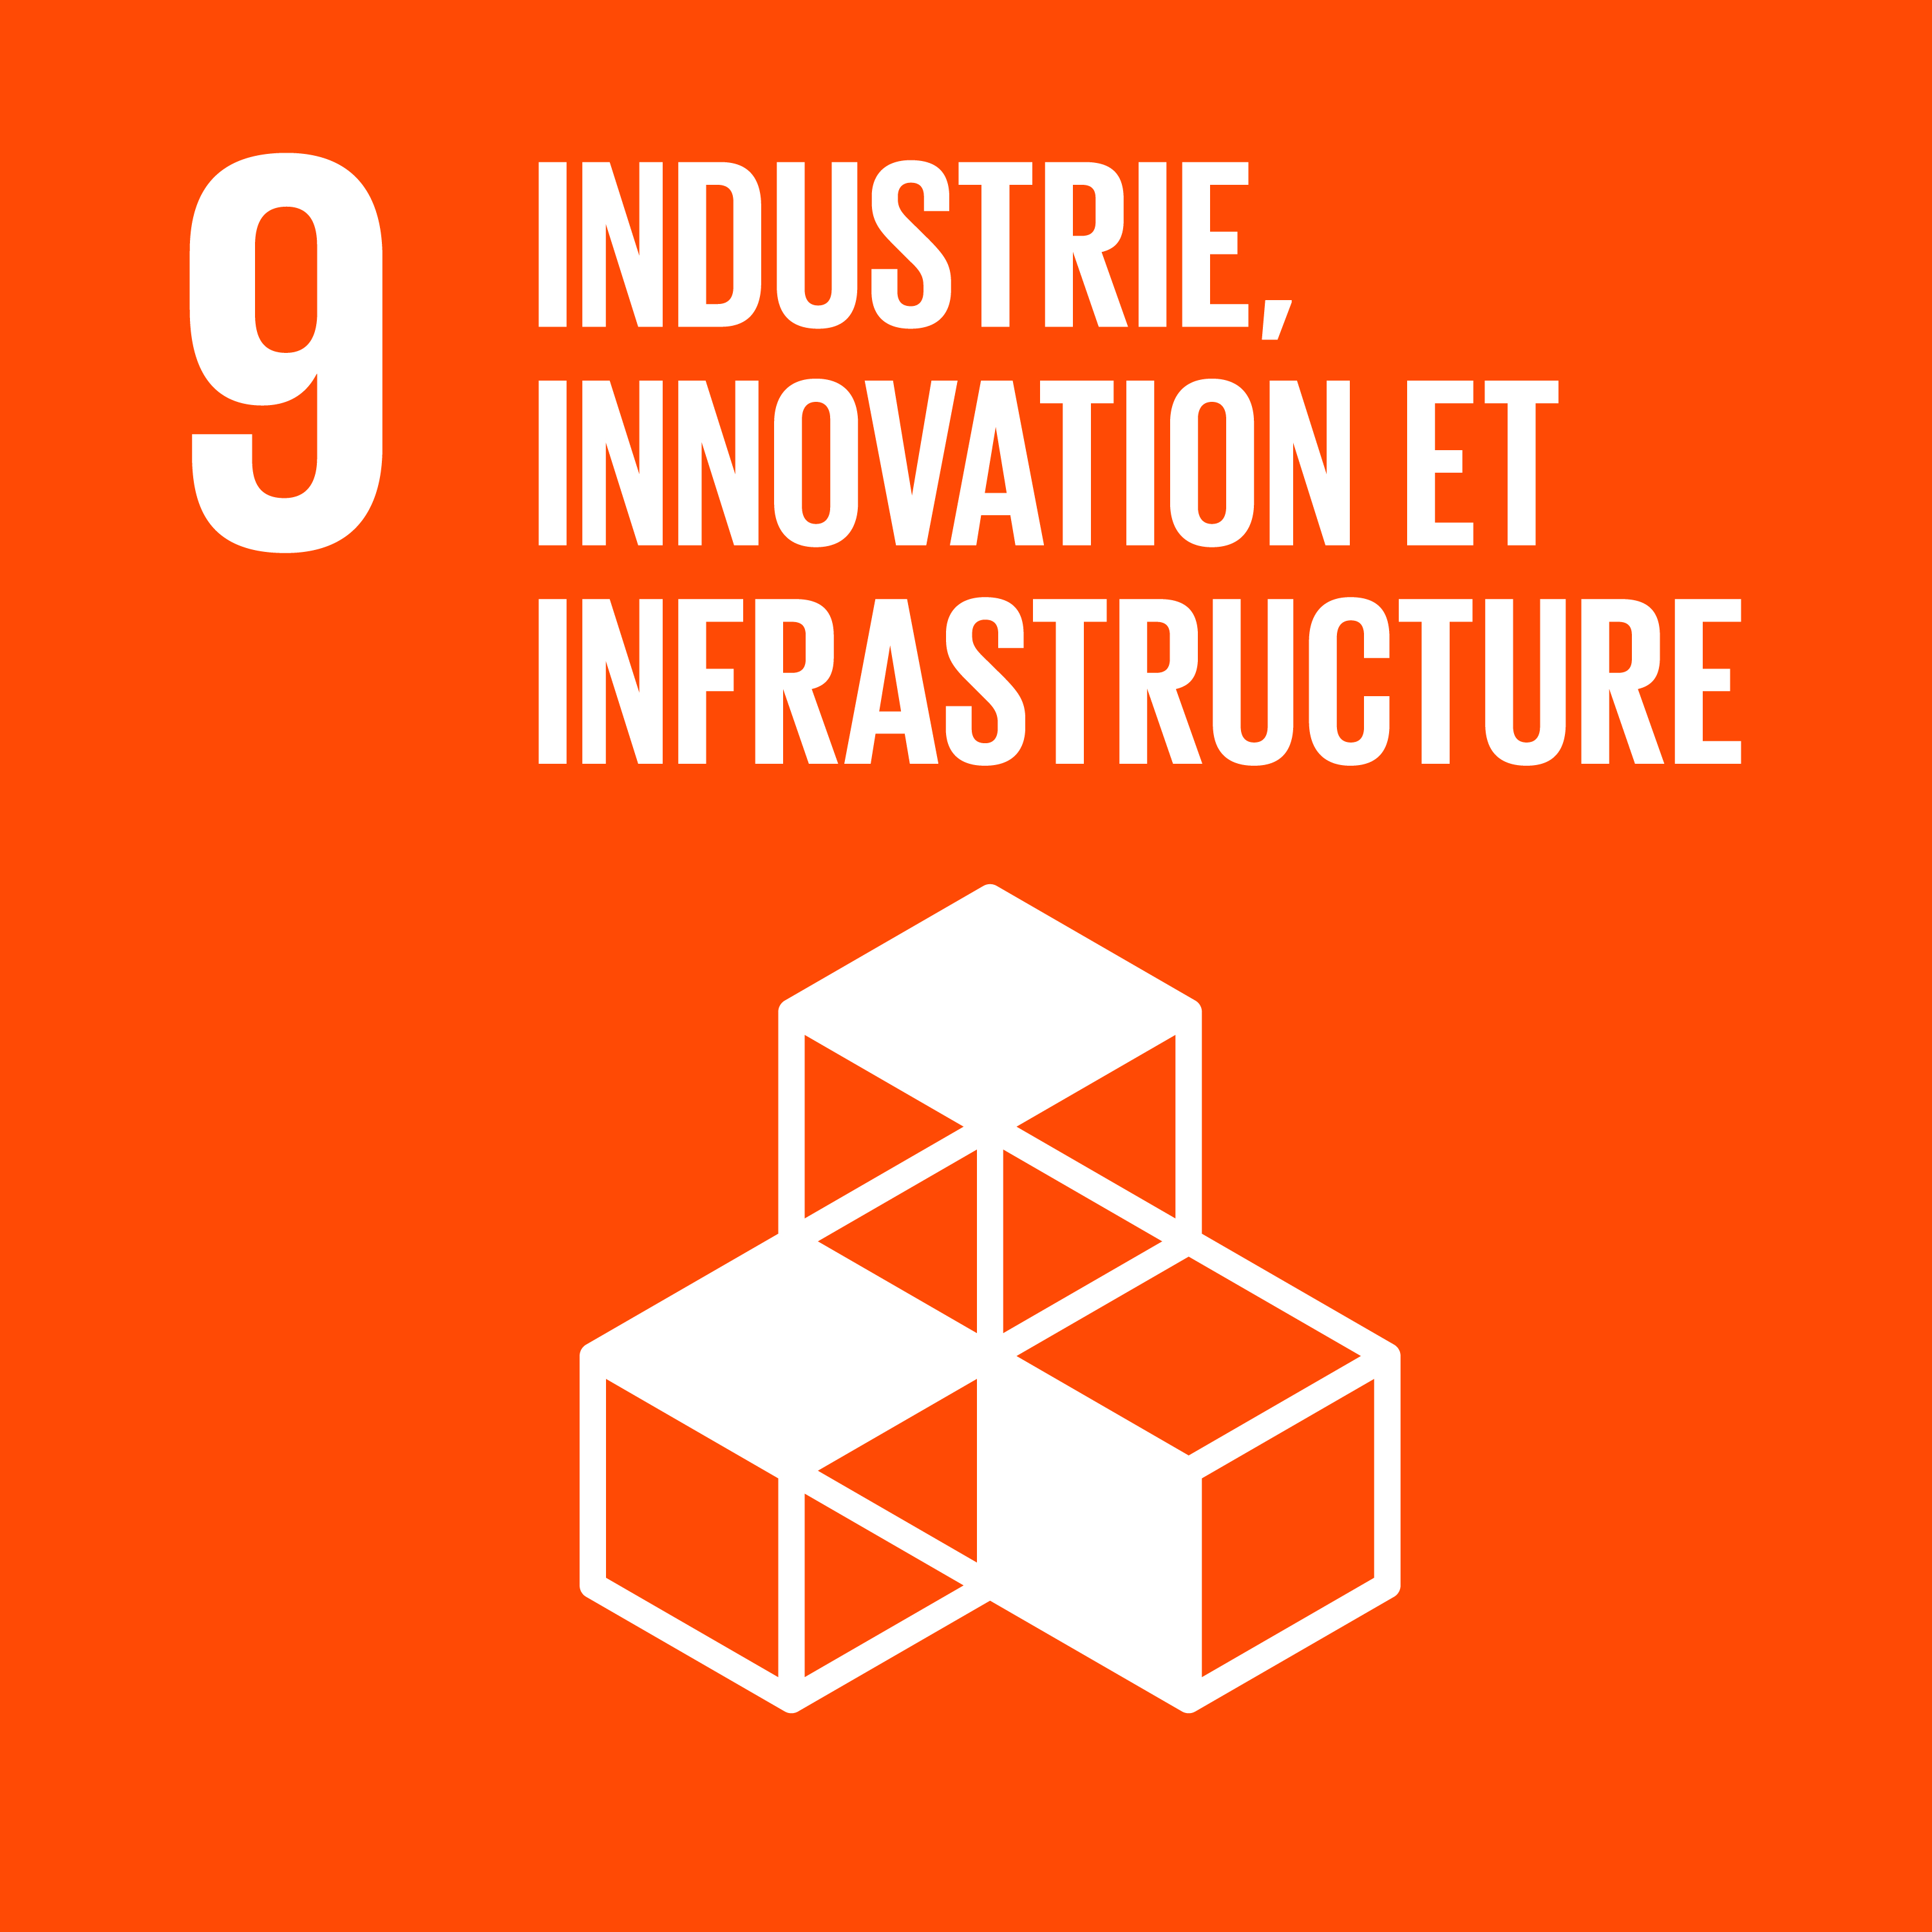 Objectif 9: Industrie, innovation et infrastructure © Nations unies